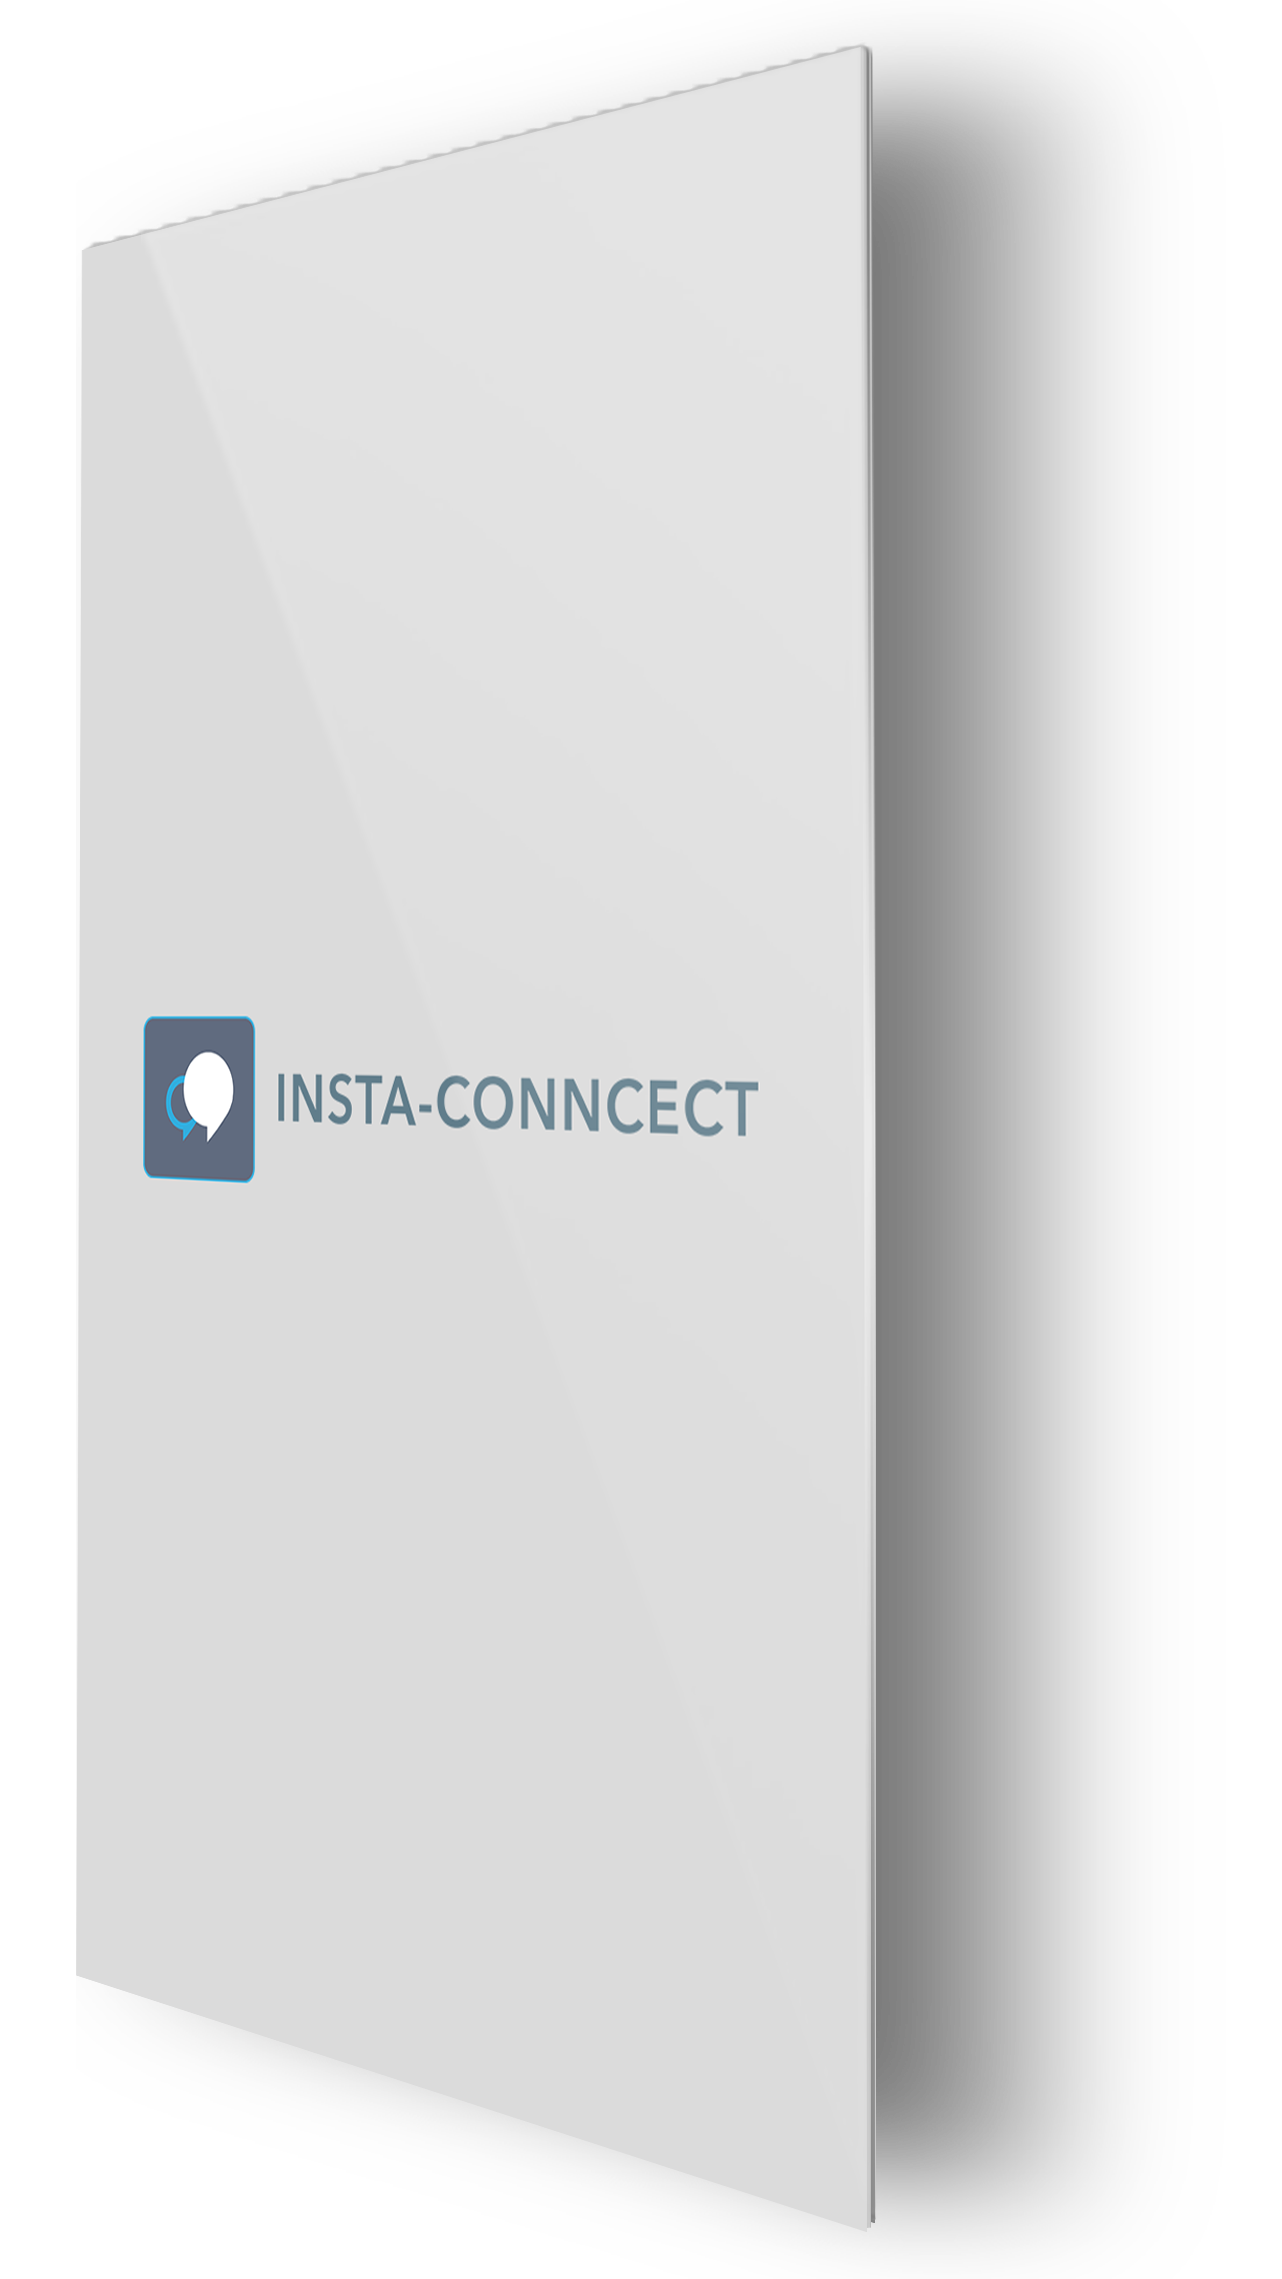 Insta Connect Image